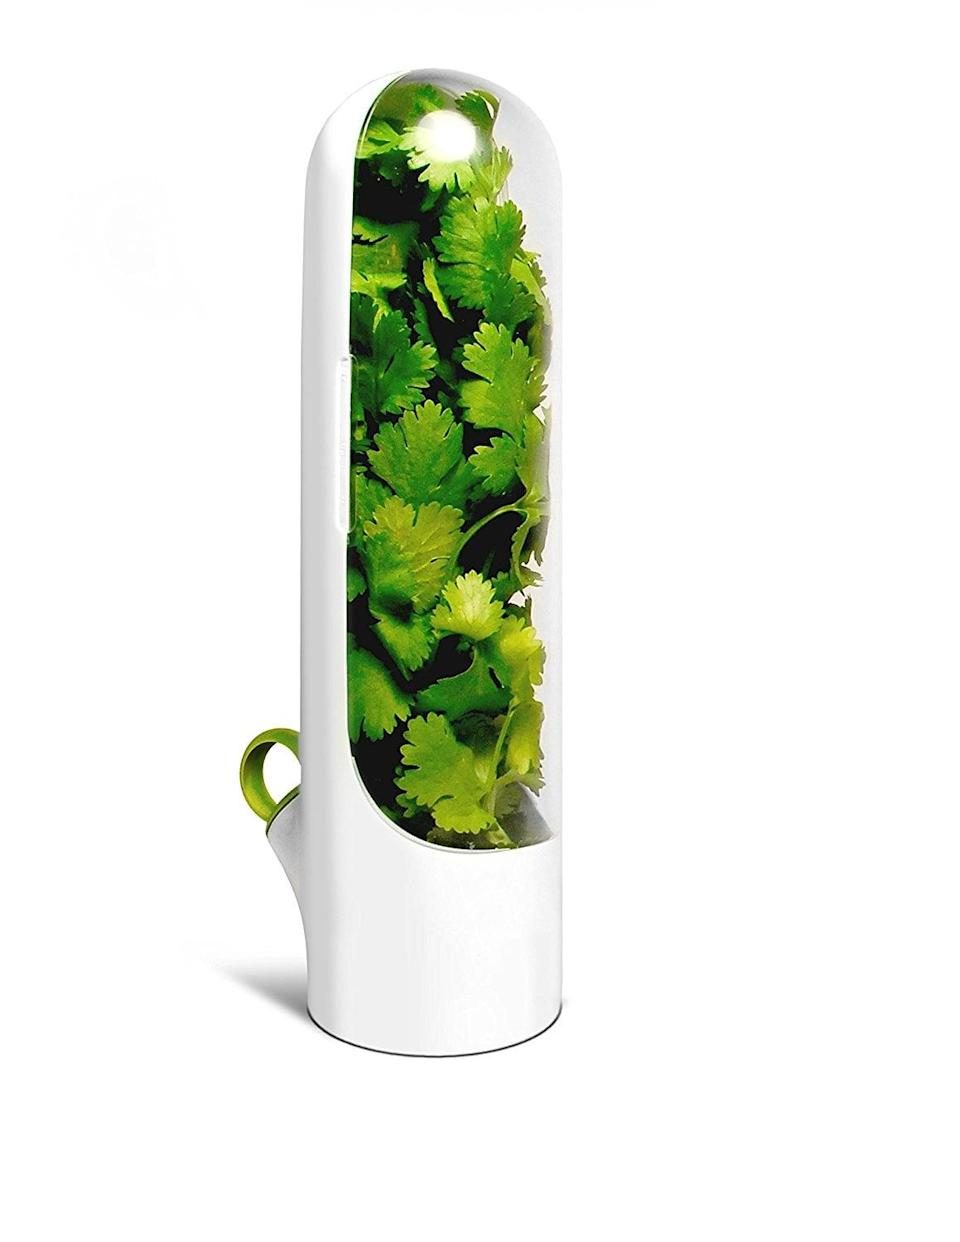 <p>Make sure your herbs stay as fresh as possible by storing them in this <span>Herb Saver Best Keeper</span> ($18). Simply refill it with water every three to five days and the herbs will last longer.</p>